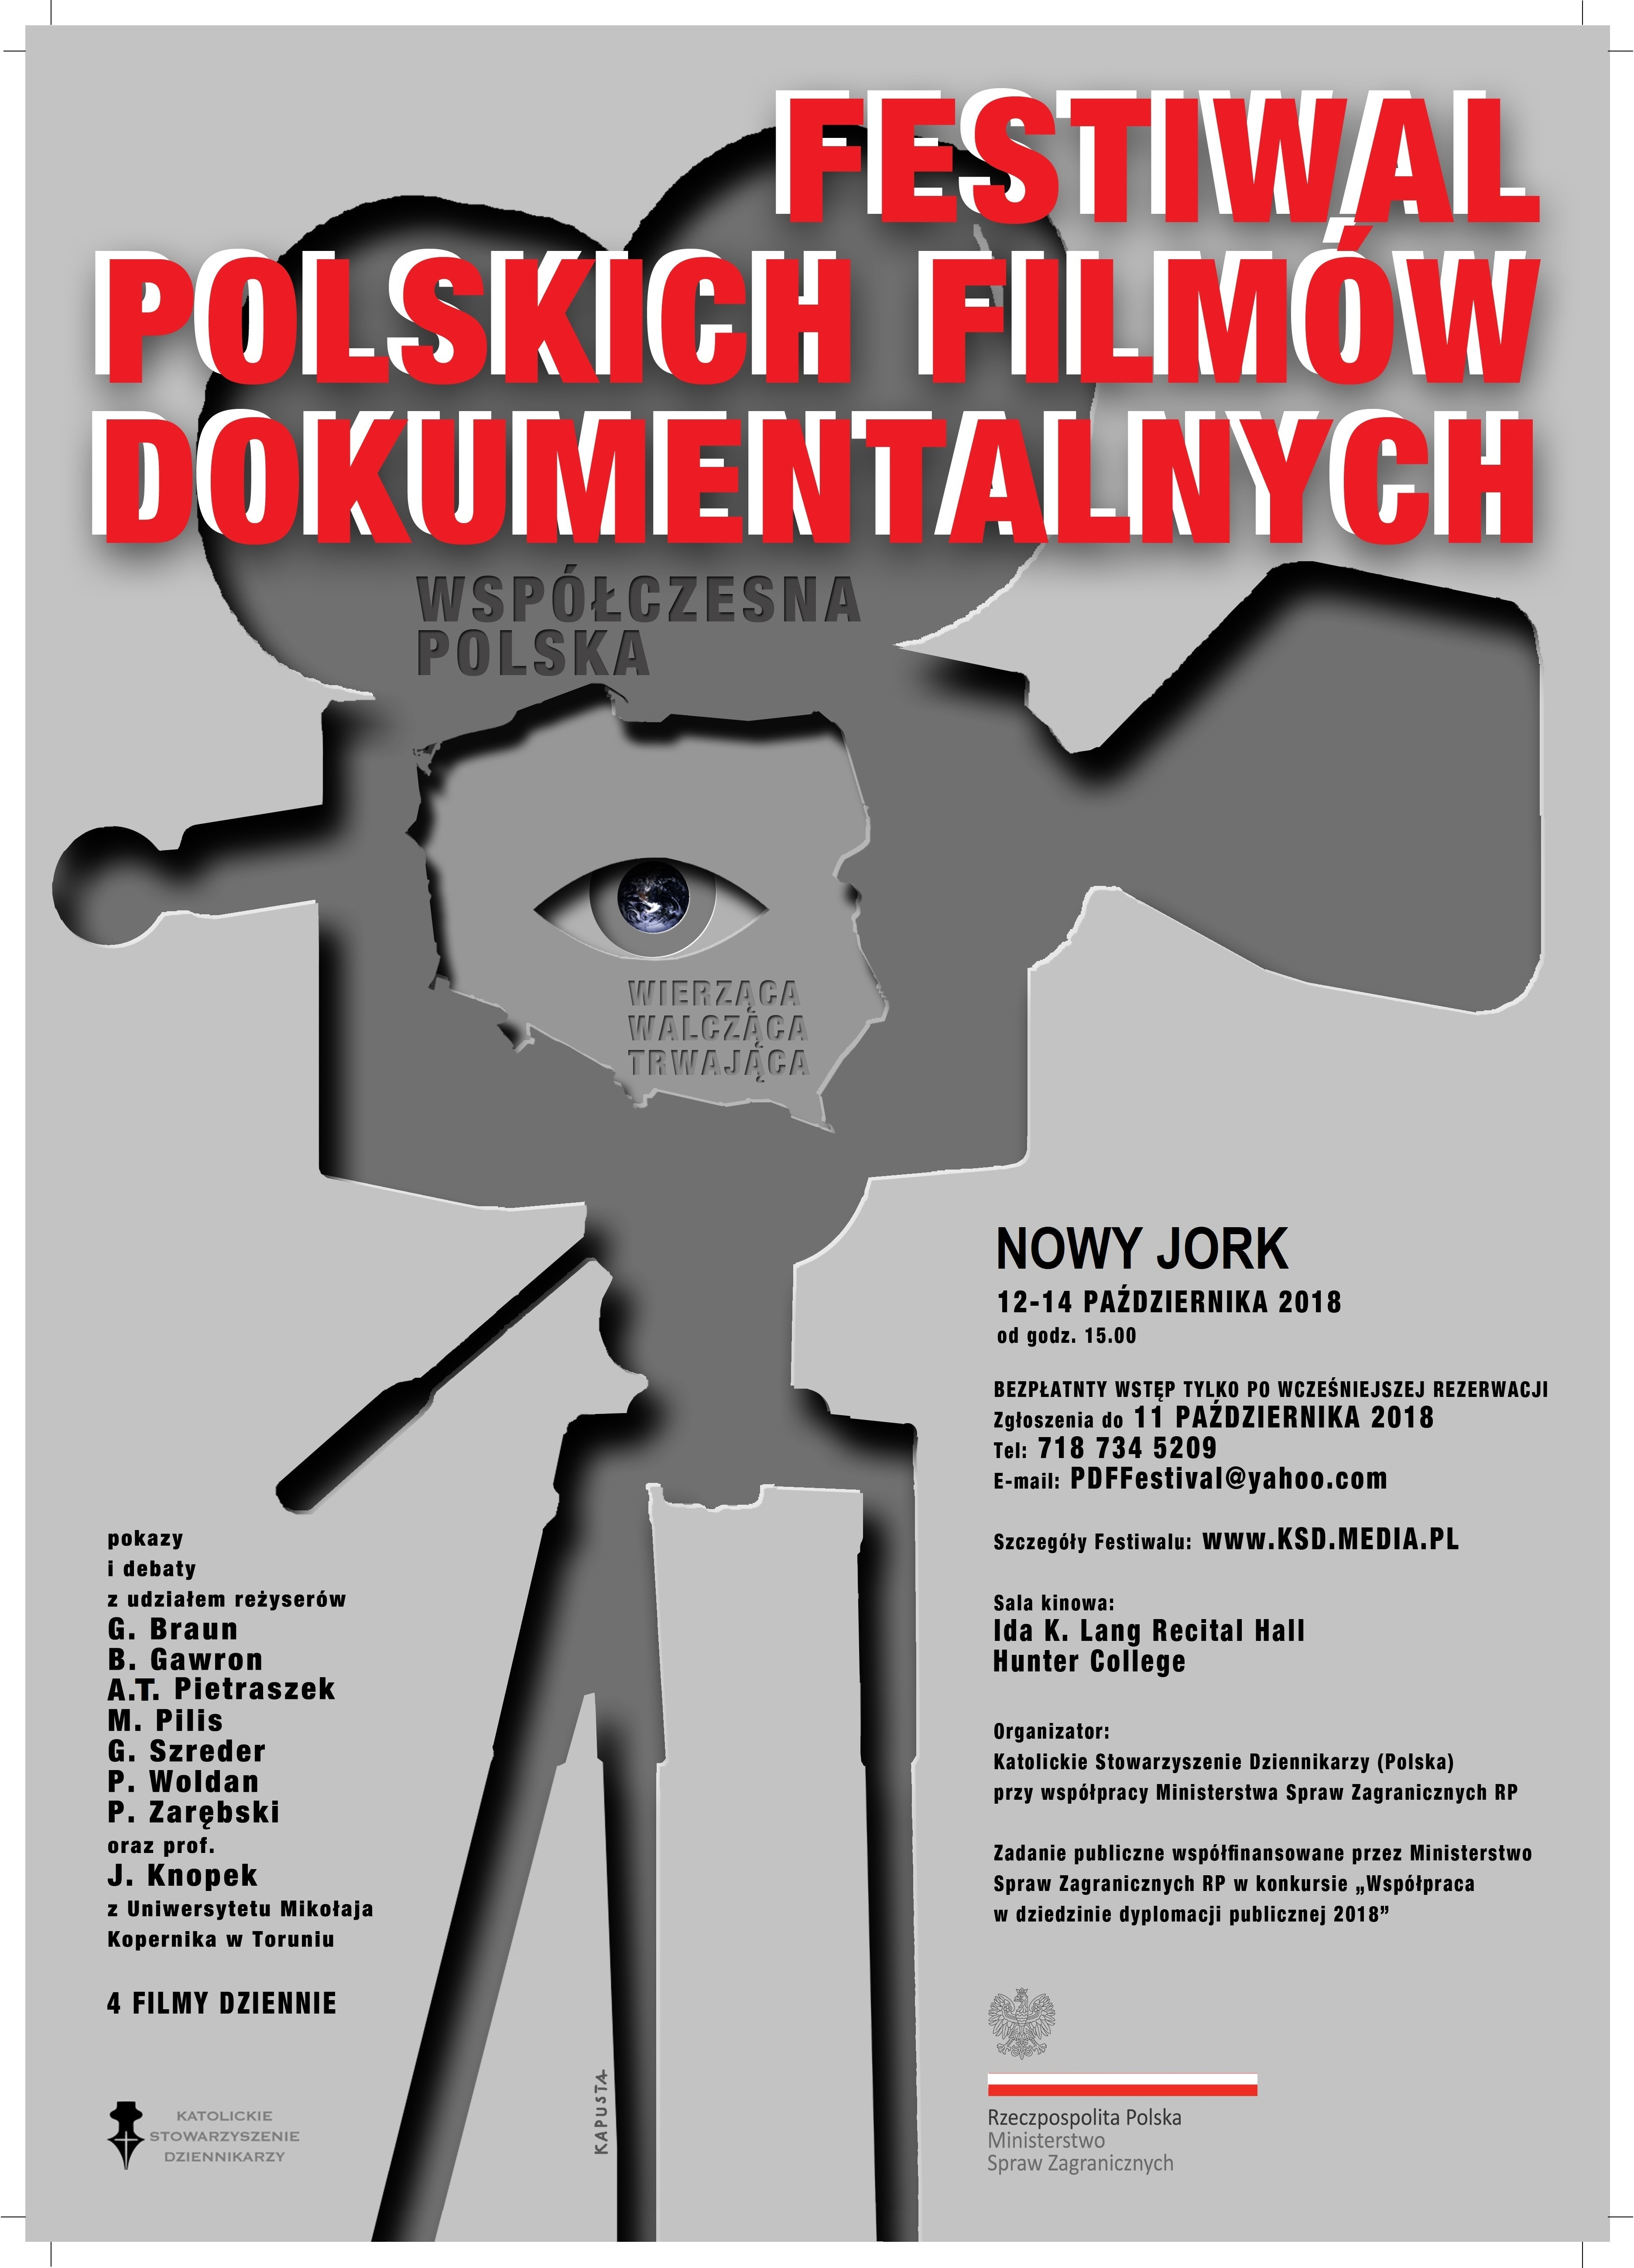 Polish Documentary Film Festival w Nowym Jorku